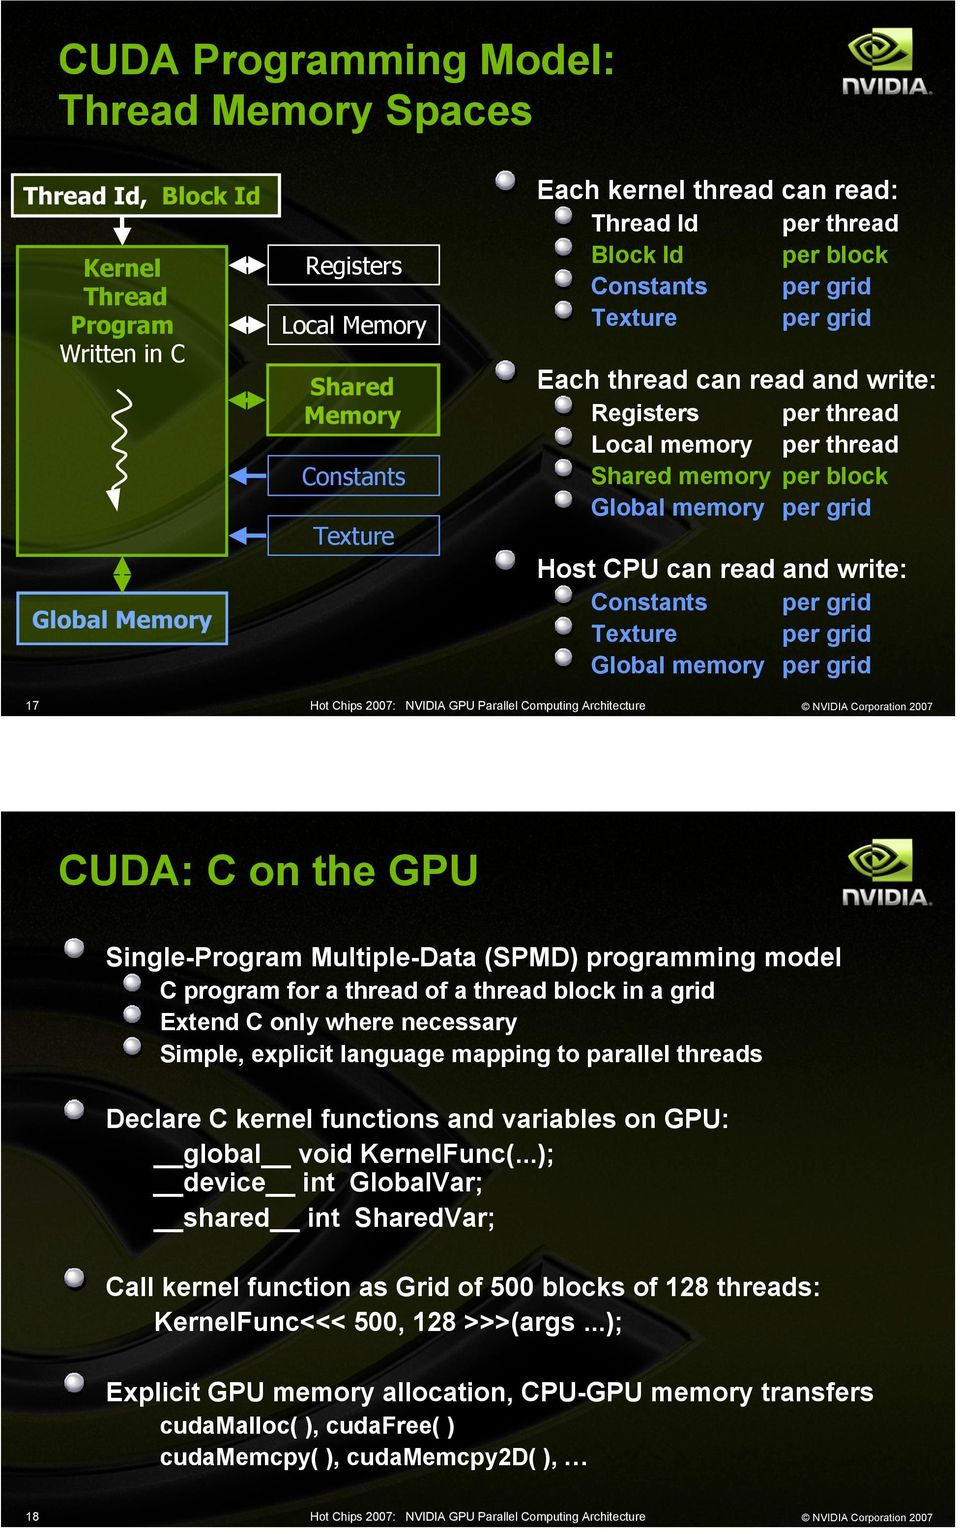 grid 17 CUDA: C on the GPU Single-Program Multiple-Data (MD) programming model C program for a thread of a thread block in a grid Extend C only where necessary Simple, explicit language mapping to